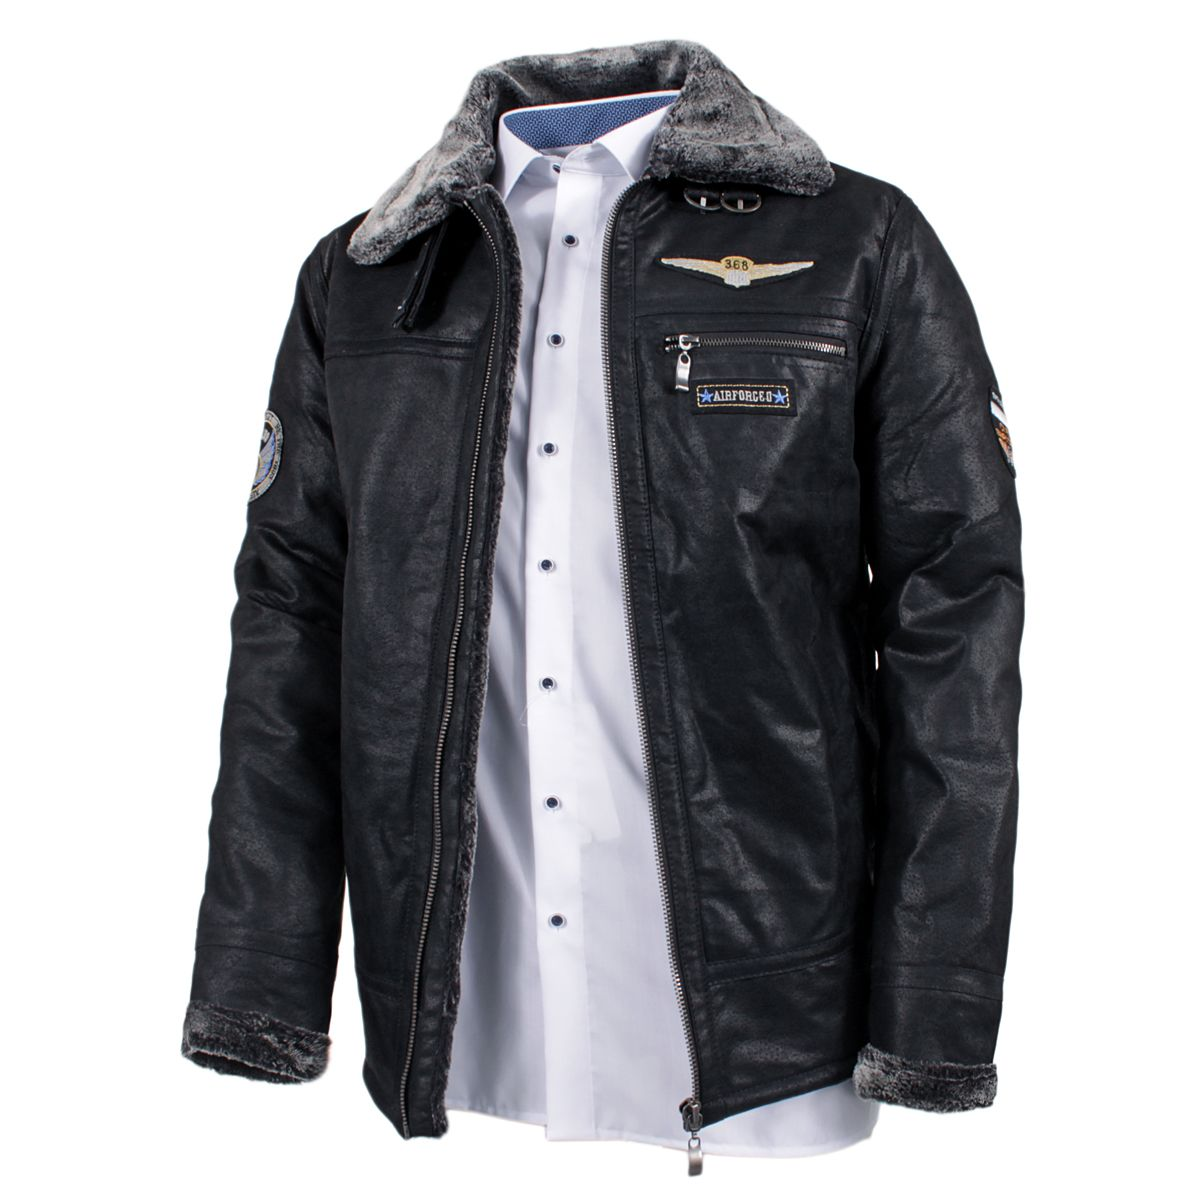 102 blouson cuir homme aviateur aviation flight jackets cockpit usa ex avirex man blouson. Black Bedroom Furniture Sets. Home Design Ideas